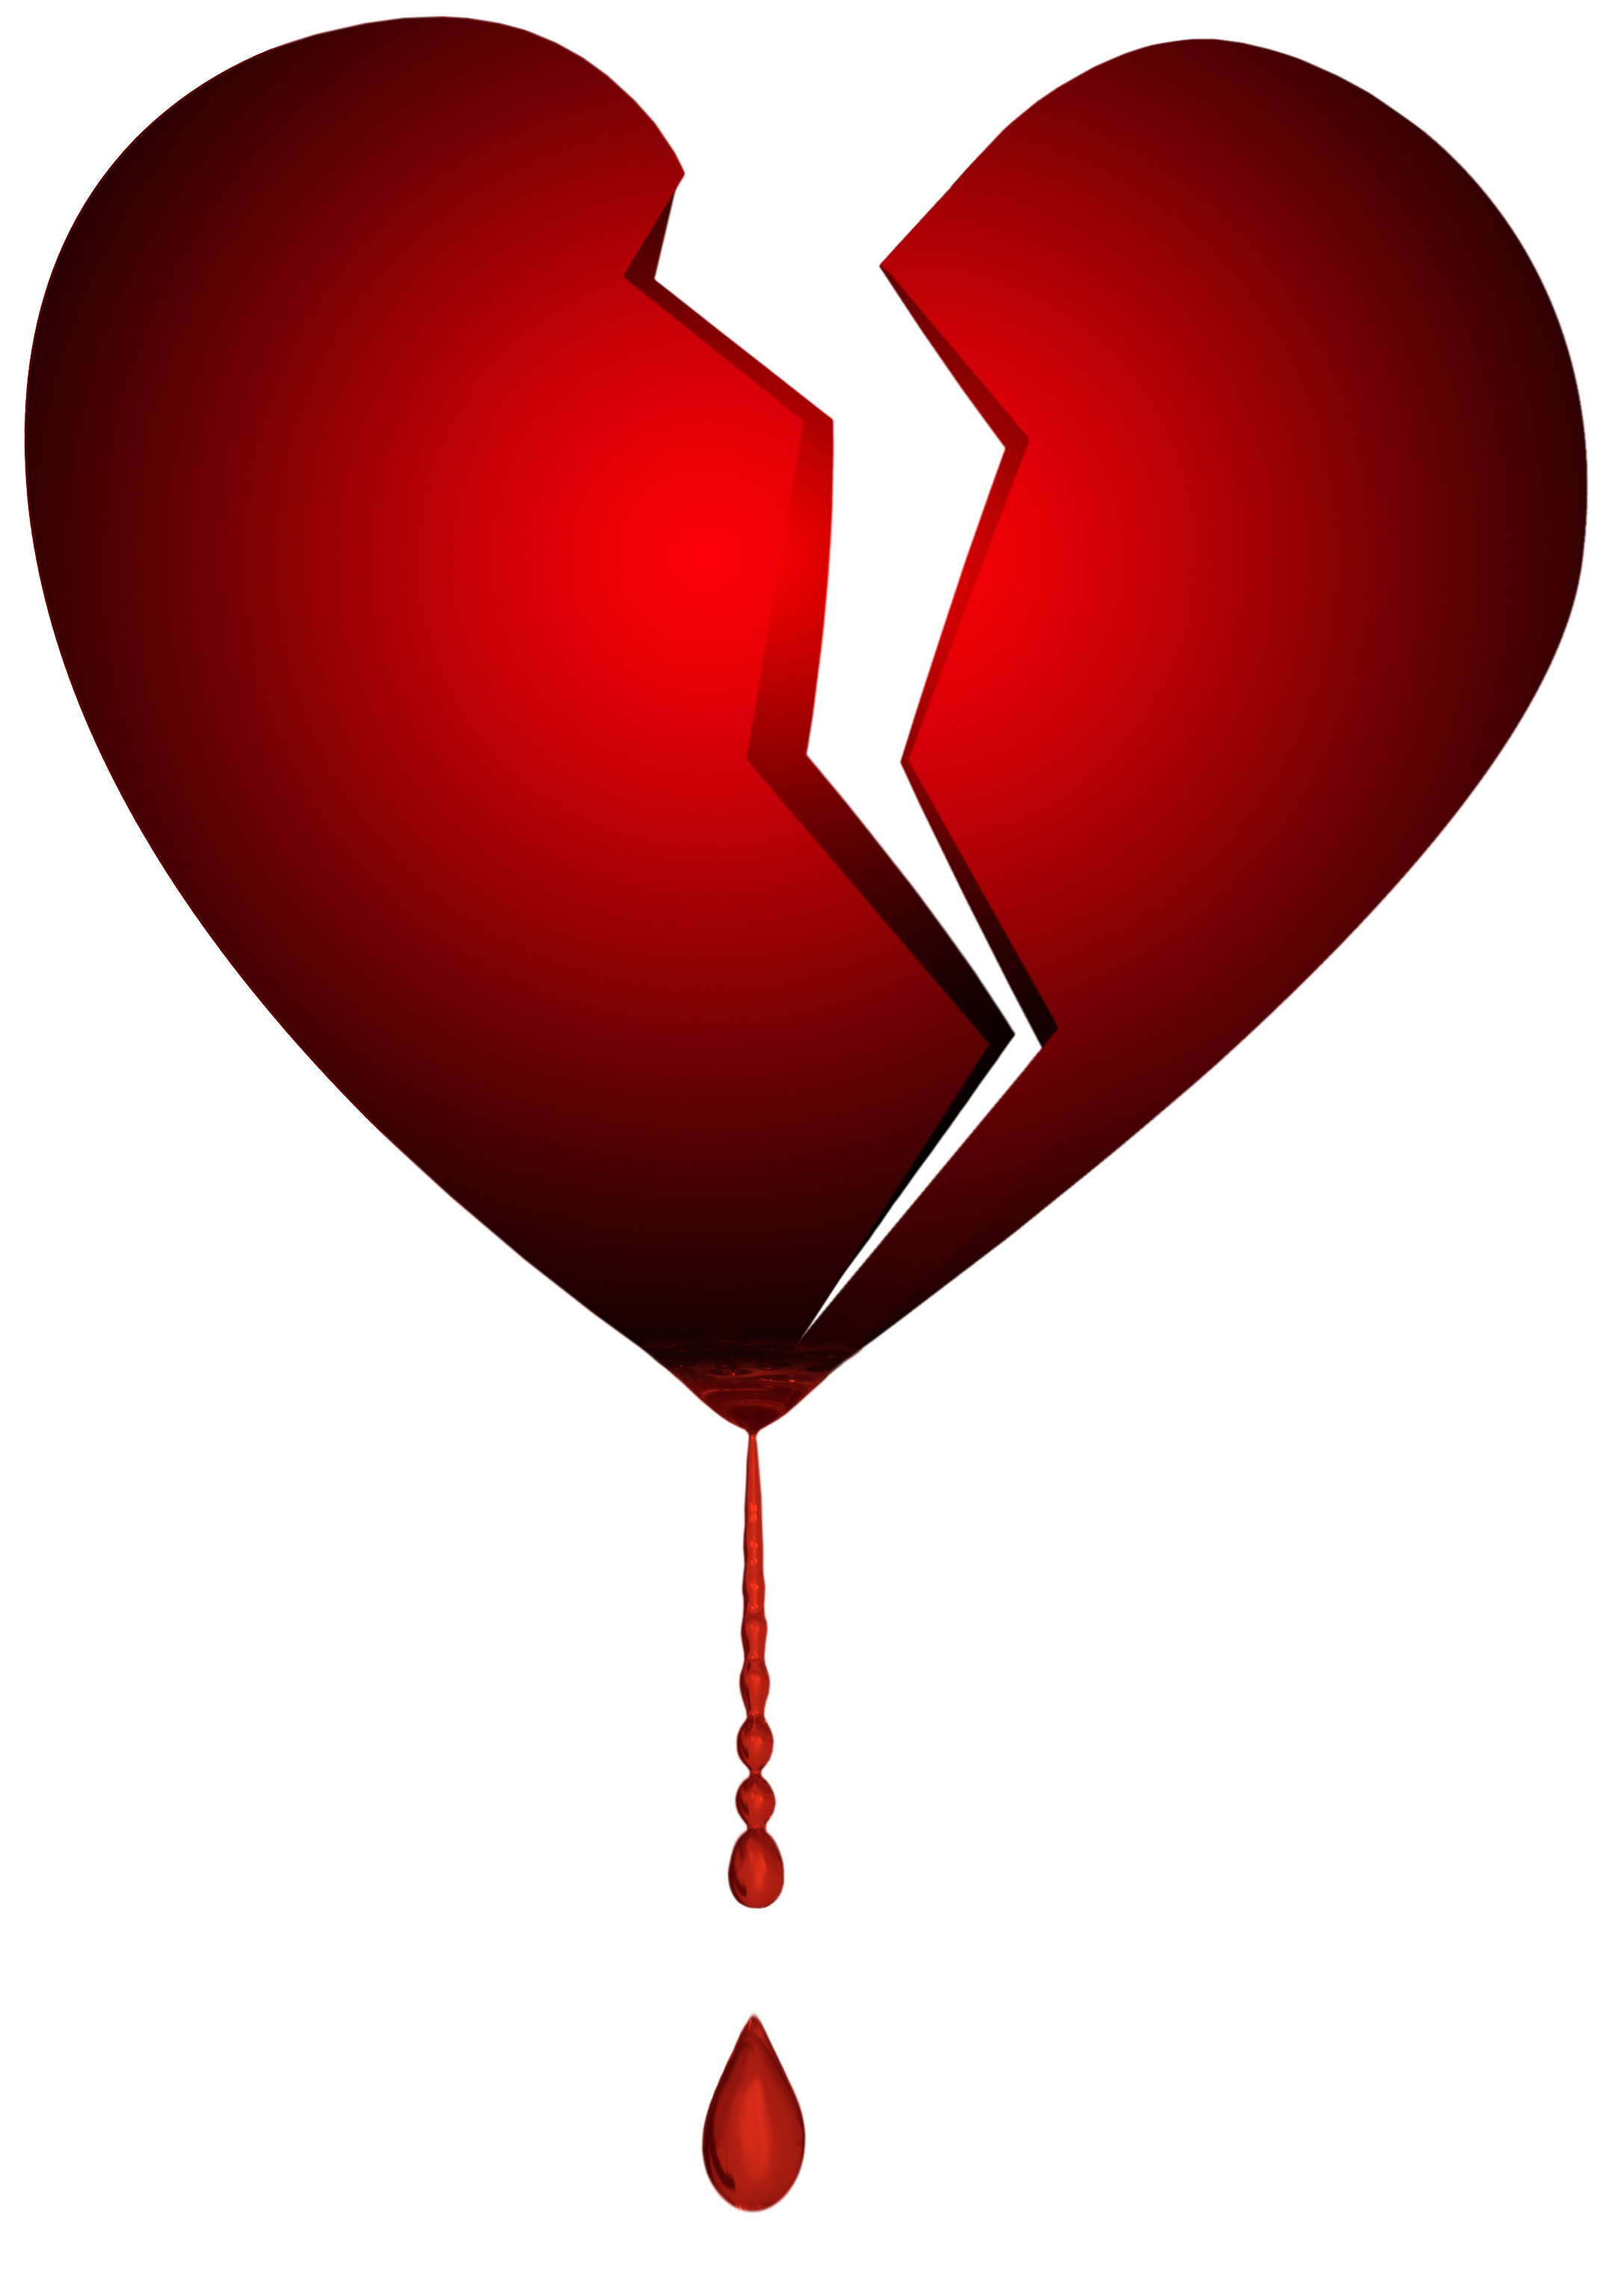 image brokenheart jpg camp half blood role playing wiki clip art broken heart clip art broken heart